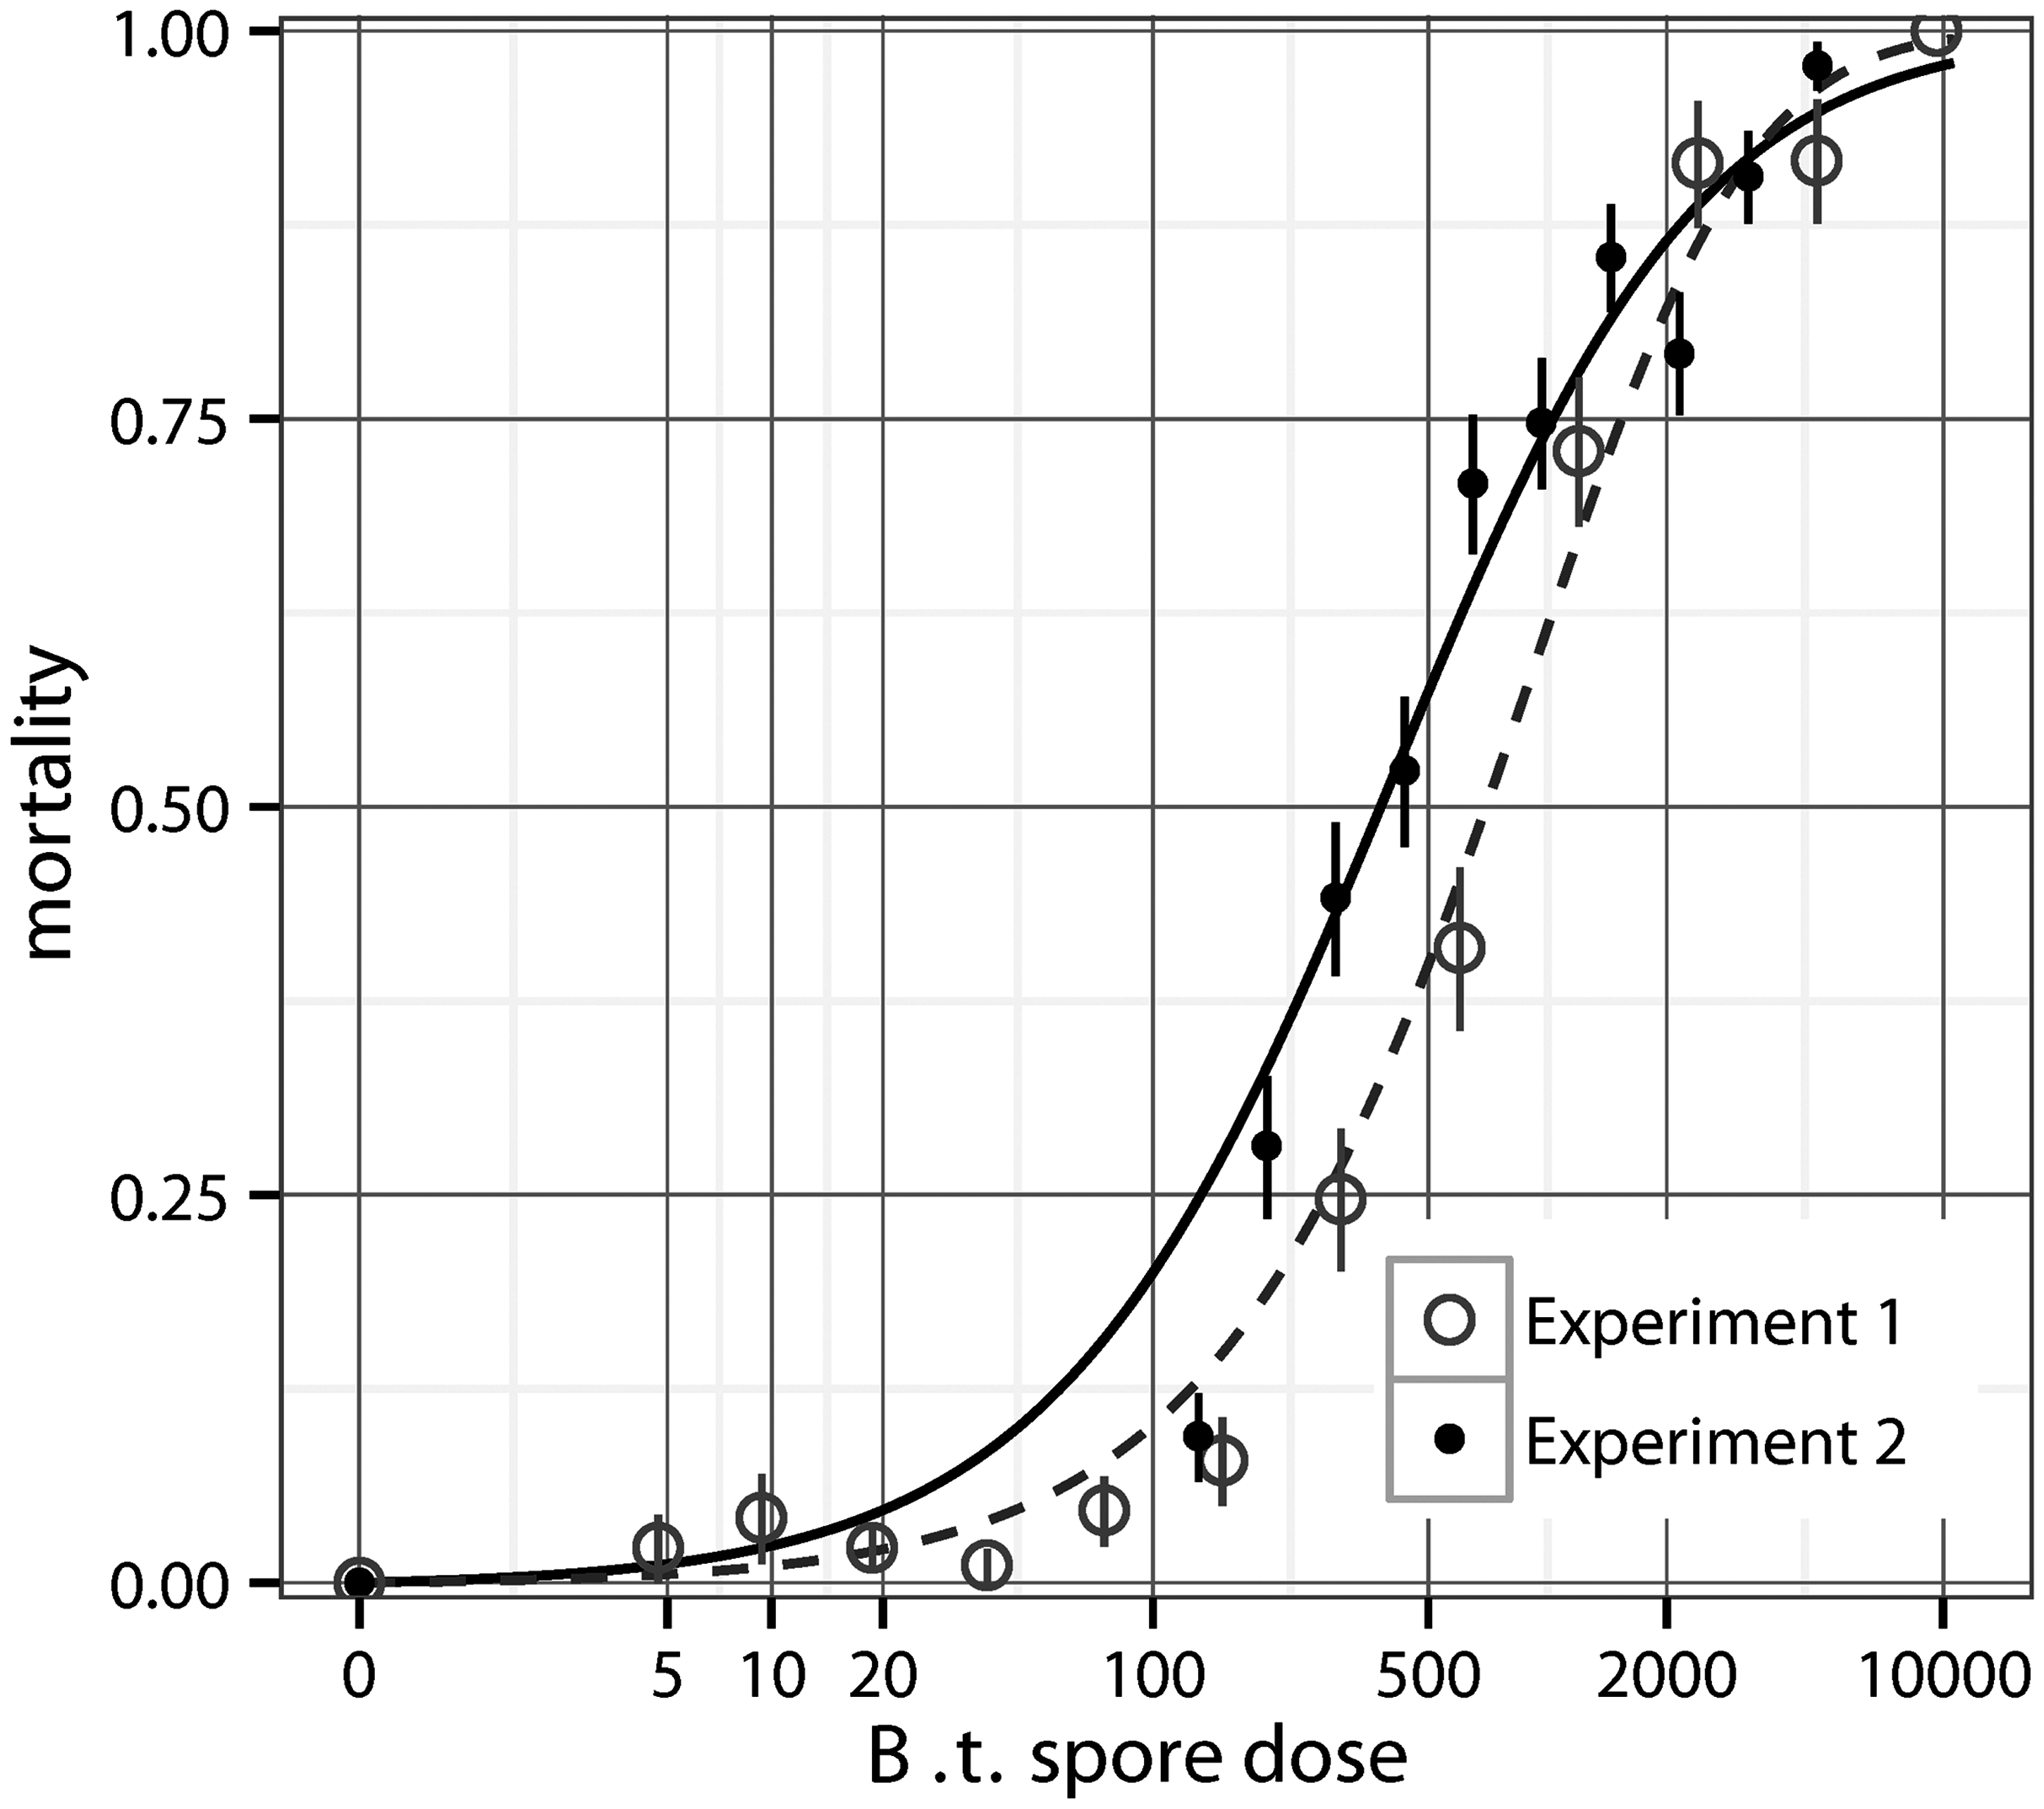 The dose-response for wild type <i>Bacillus thuringiensis</i> (+/- S.E.) in two experiments.